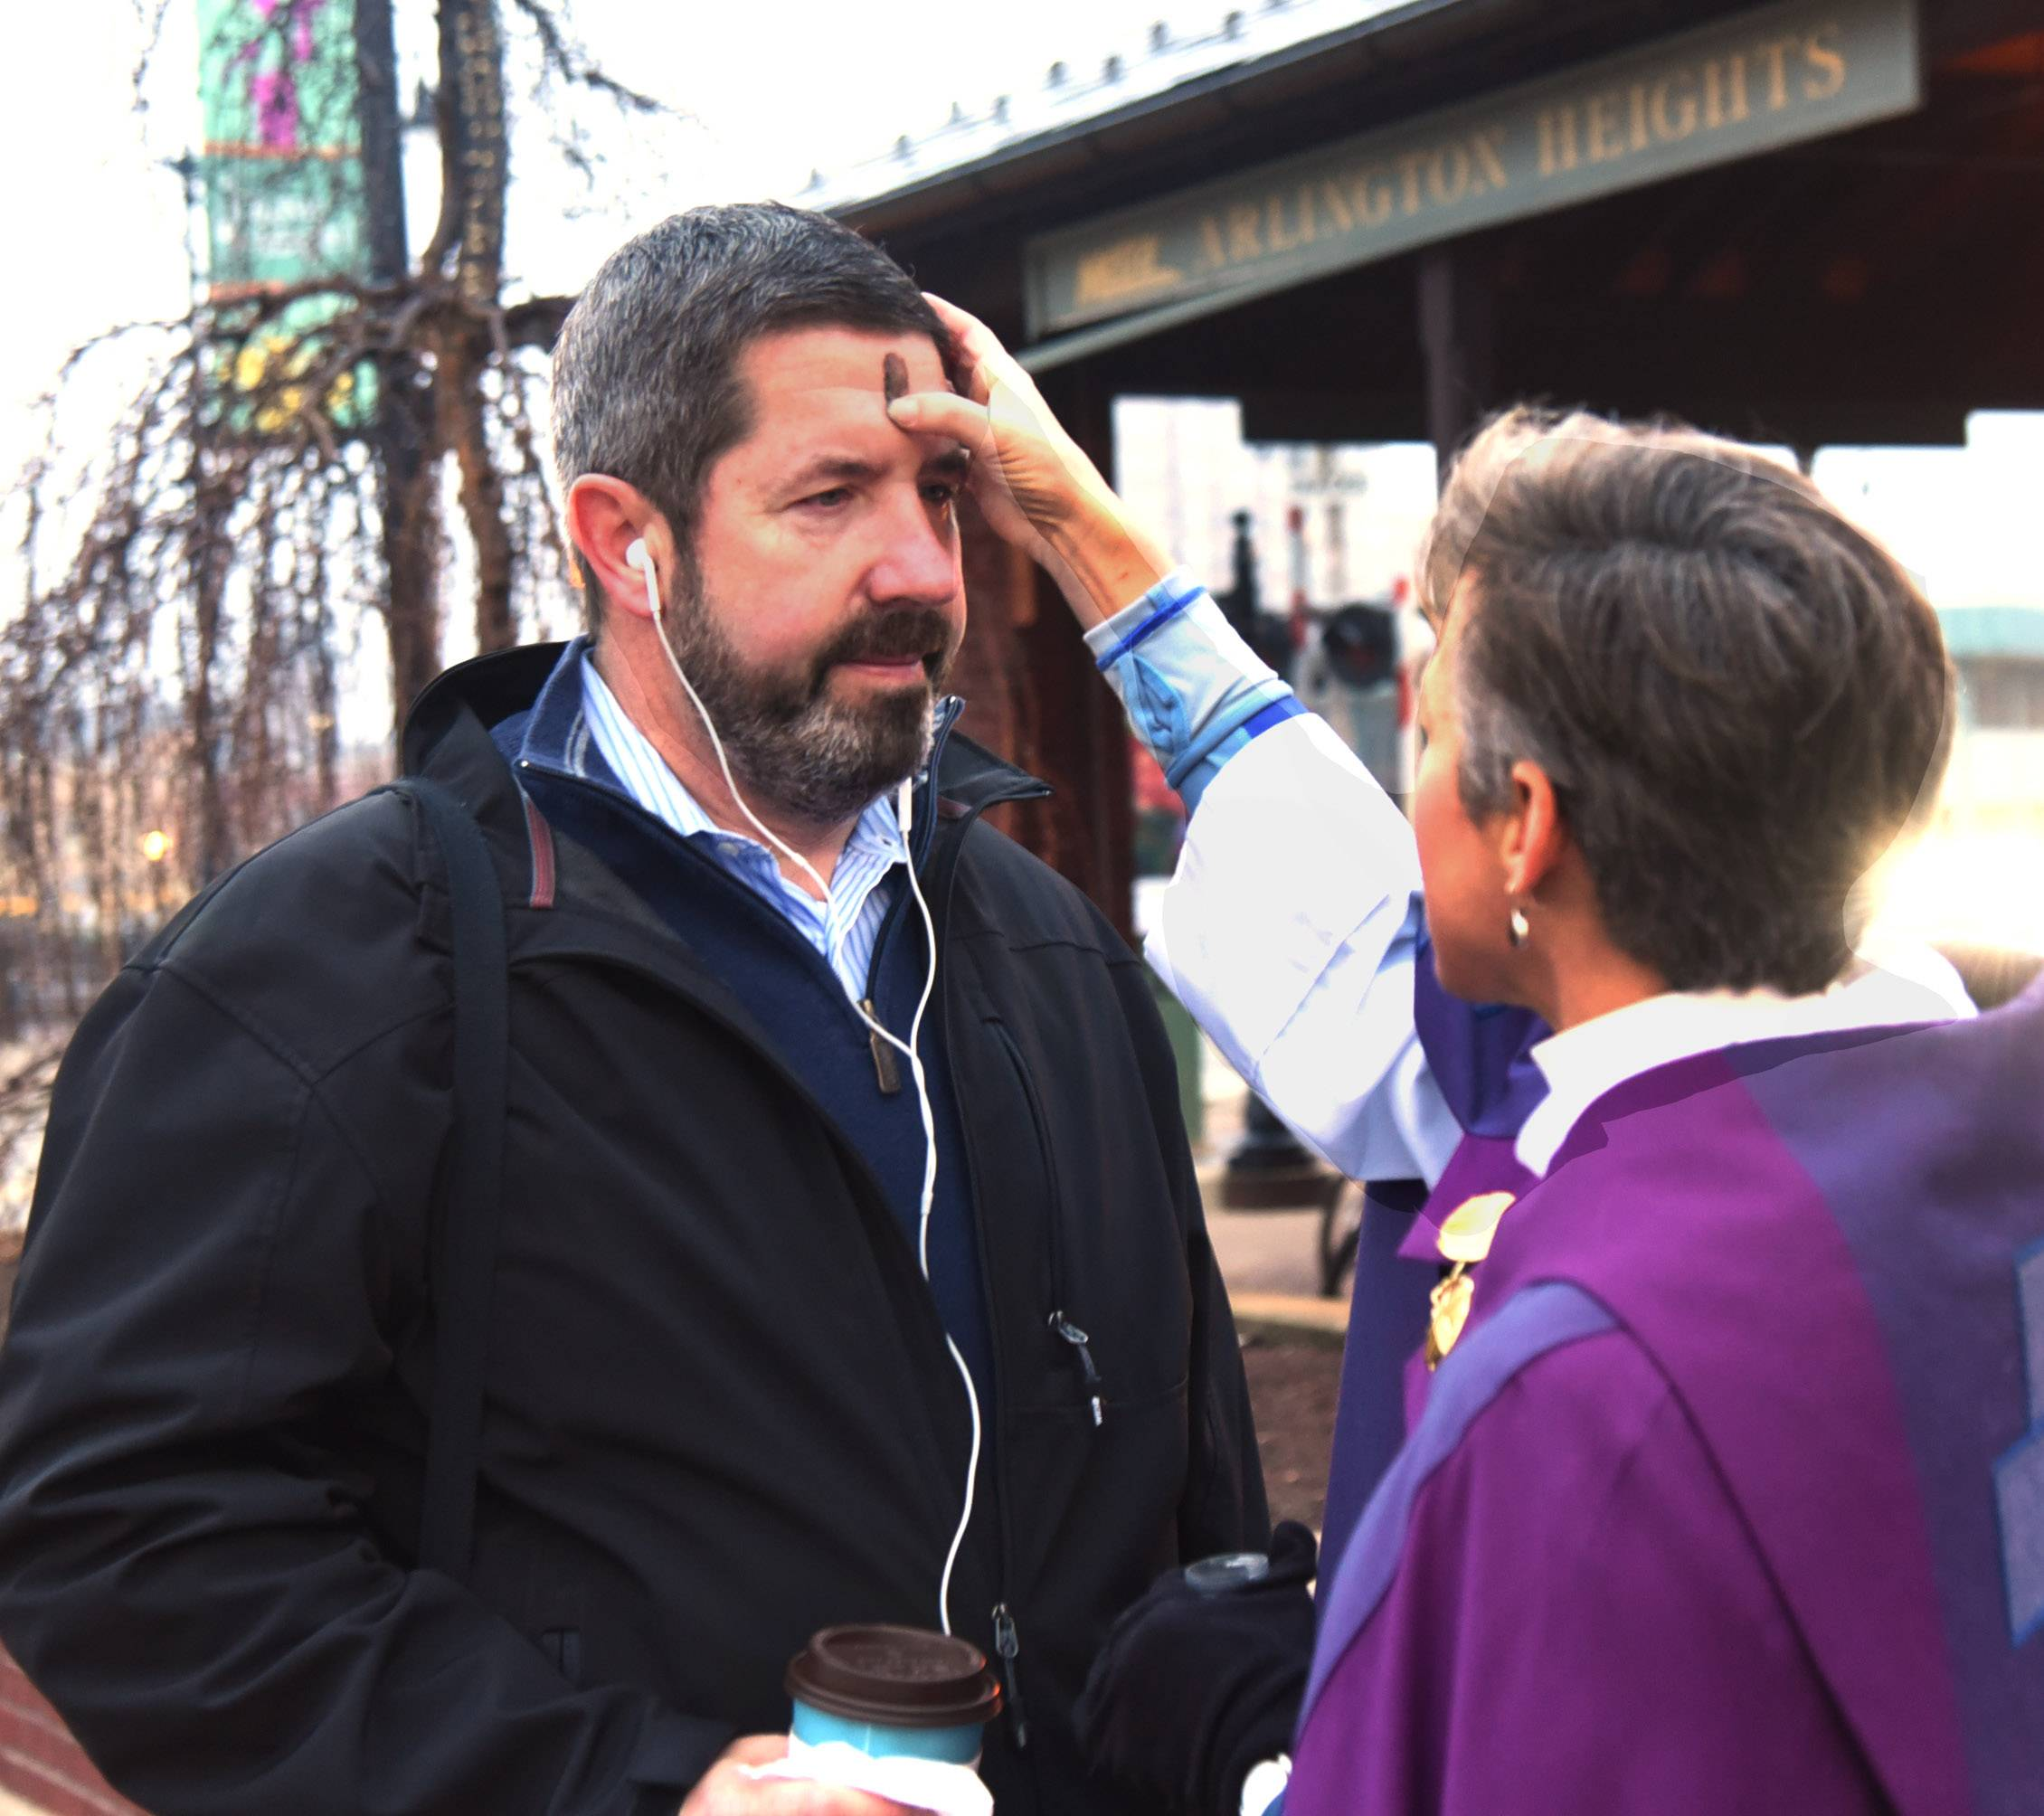 Observing the start of Lent by partaking in the ash ritual Wednesday at the Arlington Heights Metra Station, Dan Rooney of Arlington Heights receives ashes from the Rev. Elizabeth Jameson of St. Simon's Episcopal Church in Arlington Heights.